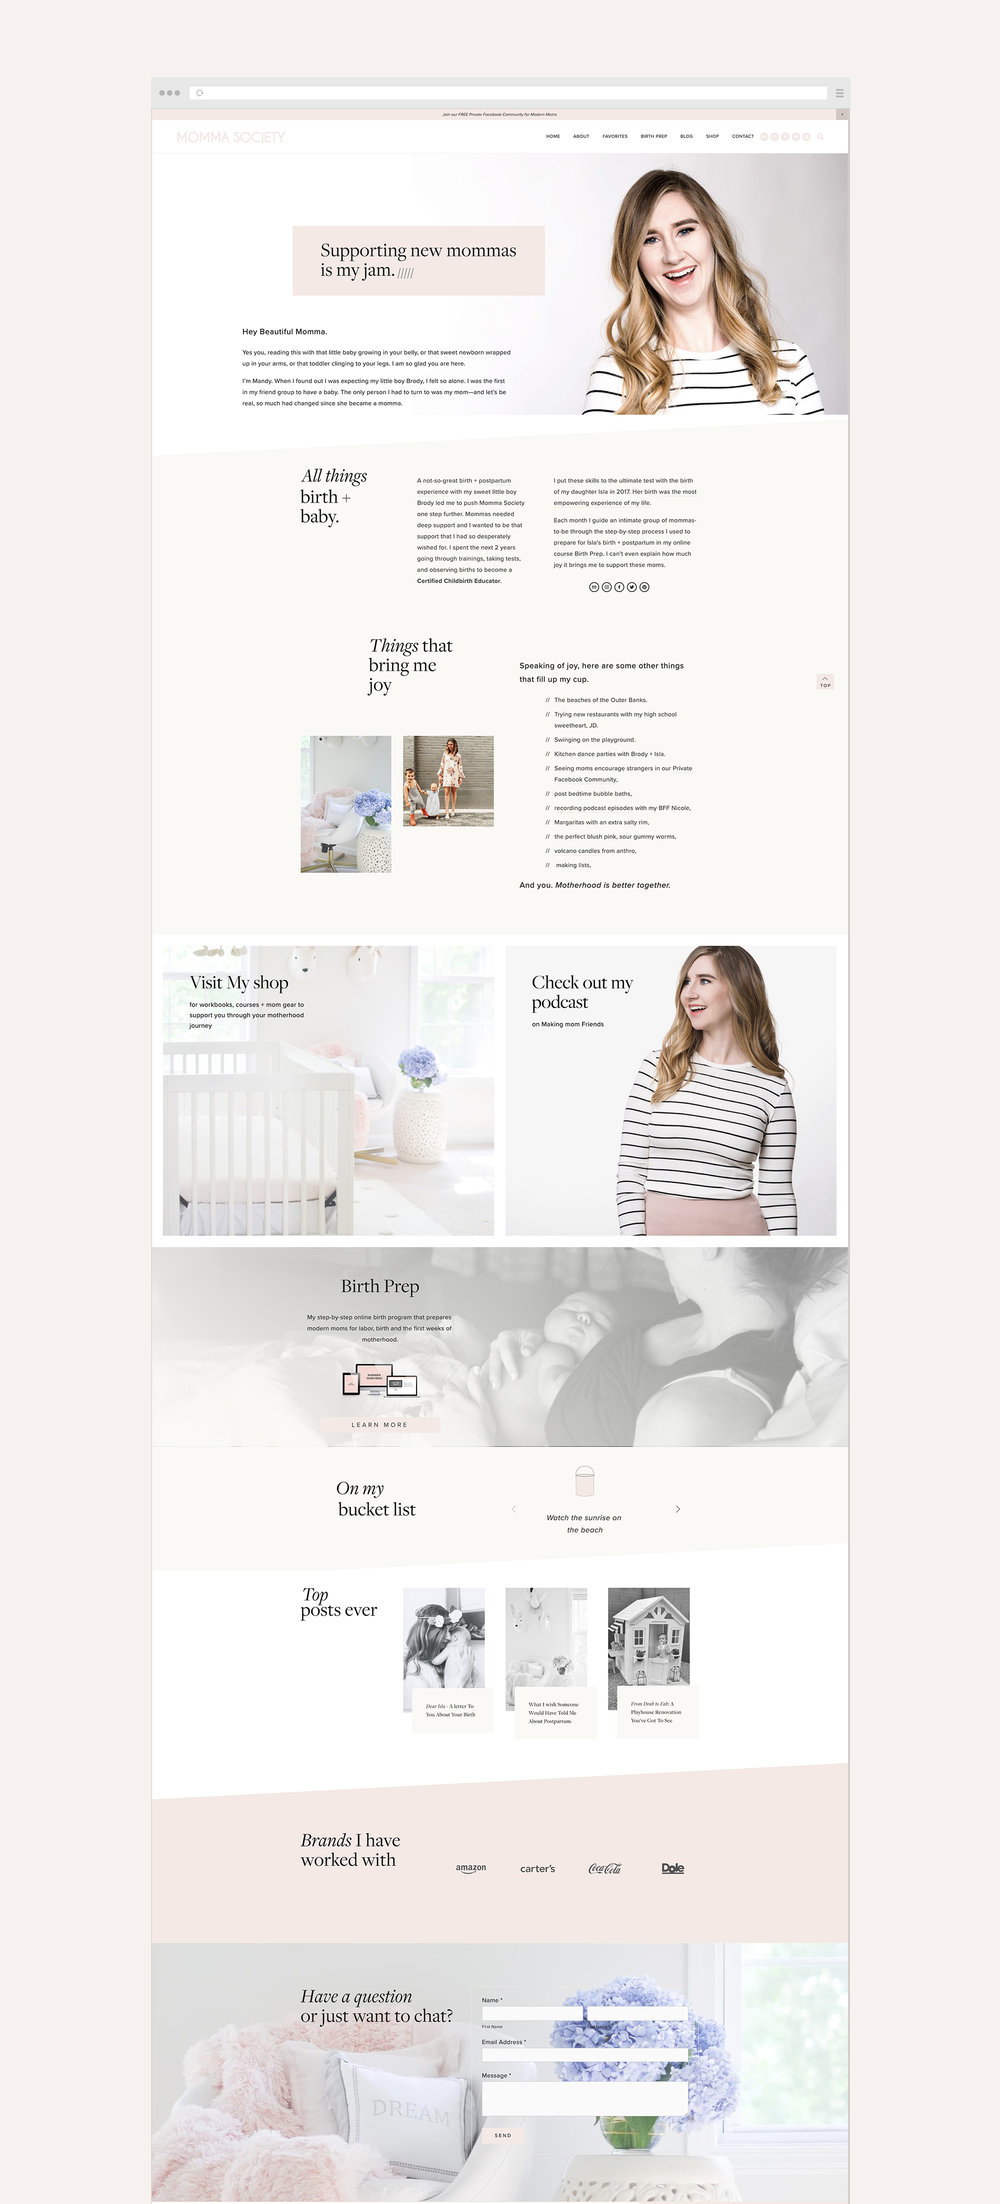 About Mandy page   Momma Society Squarespace website by Jodi Neufeld Design